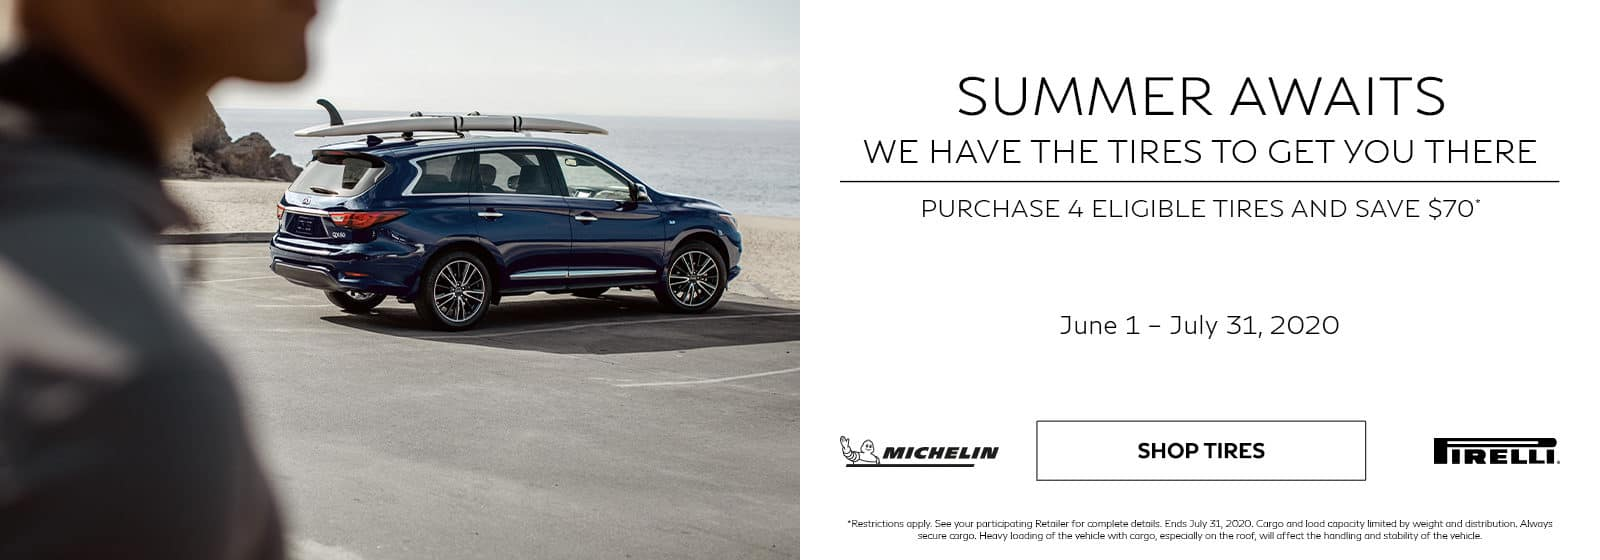 Purchase 4 eligible tires and save $70. See retailer for full details.